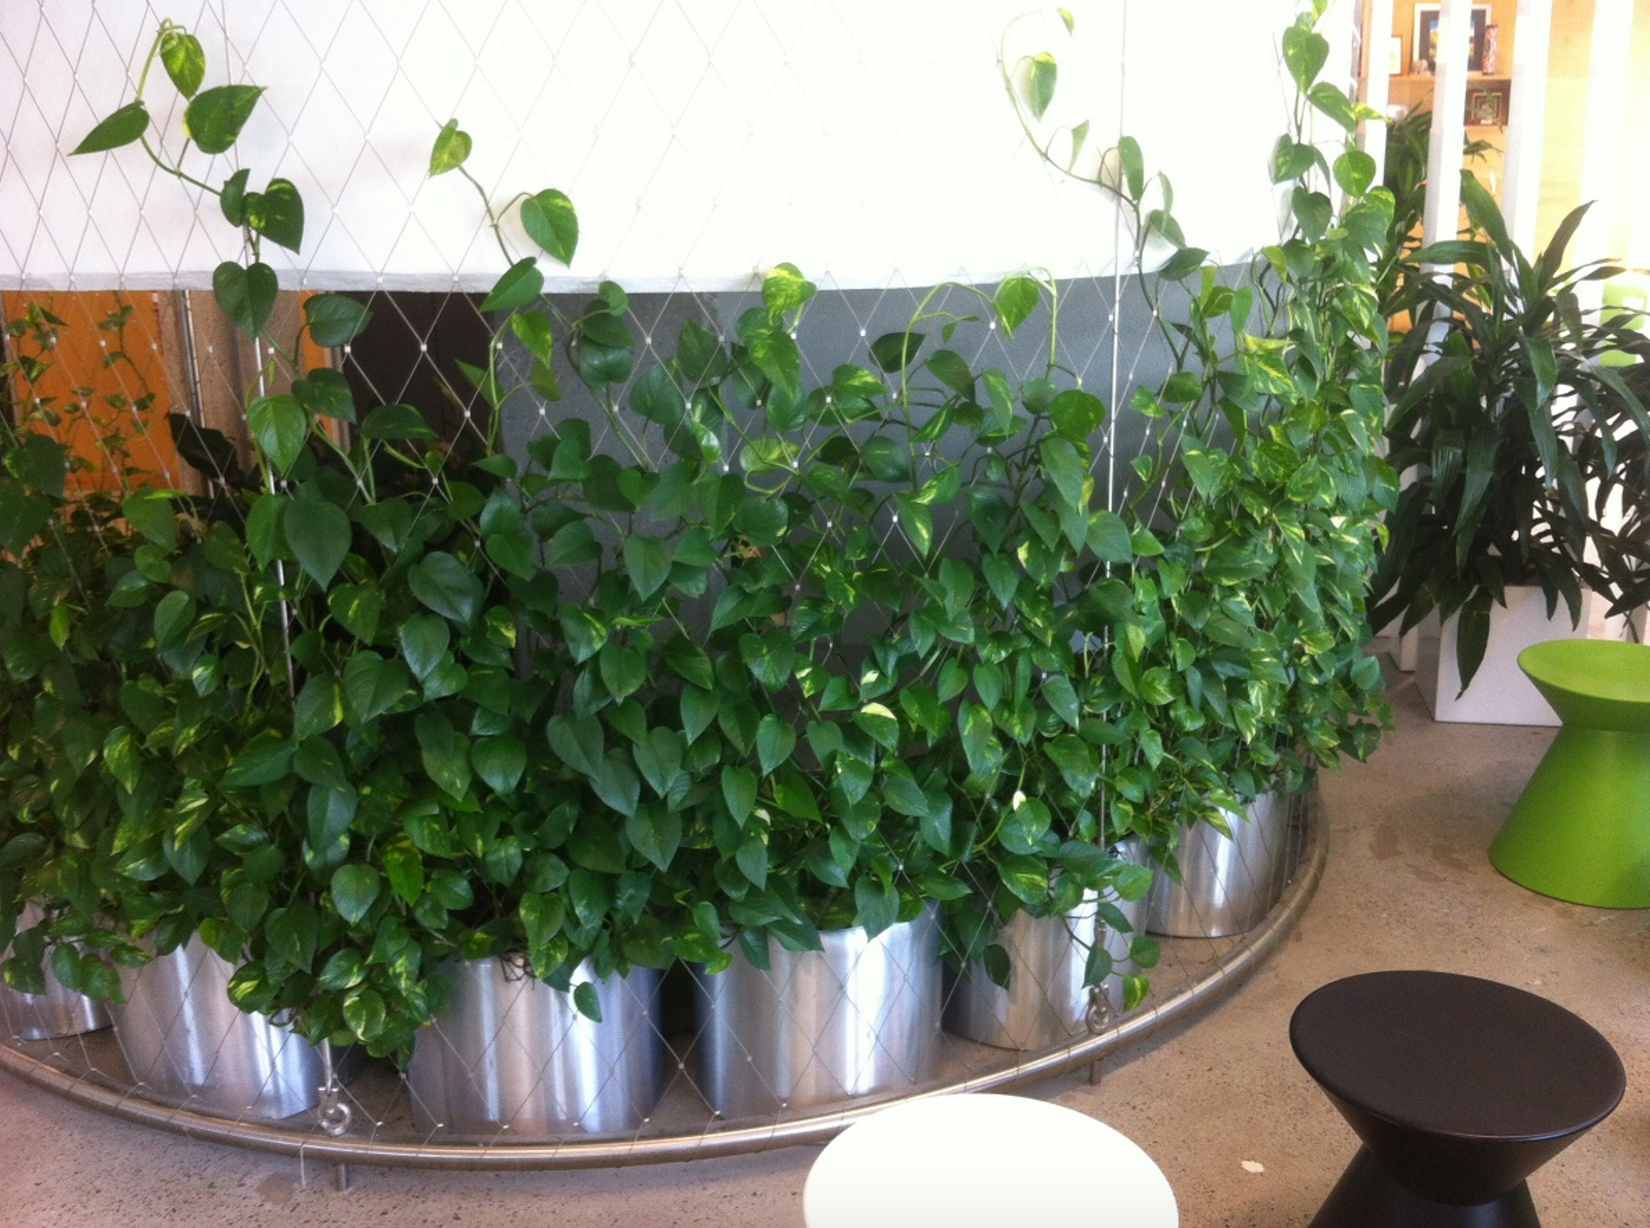 Indoor plant hire Brisbane lush creeping vines